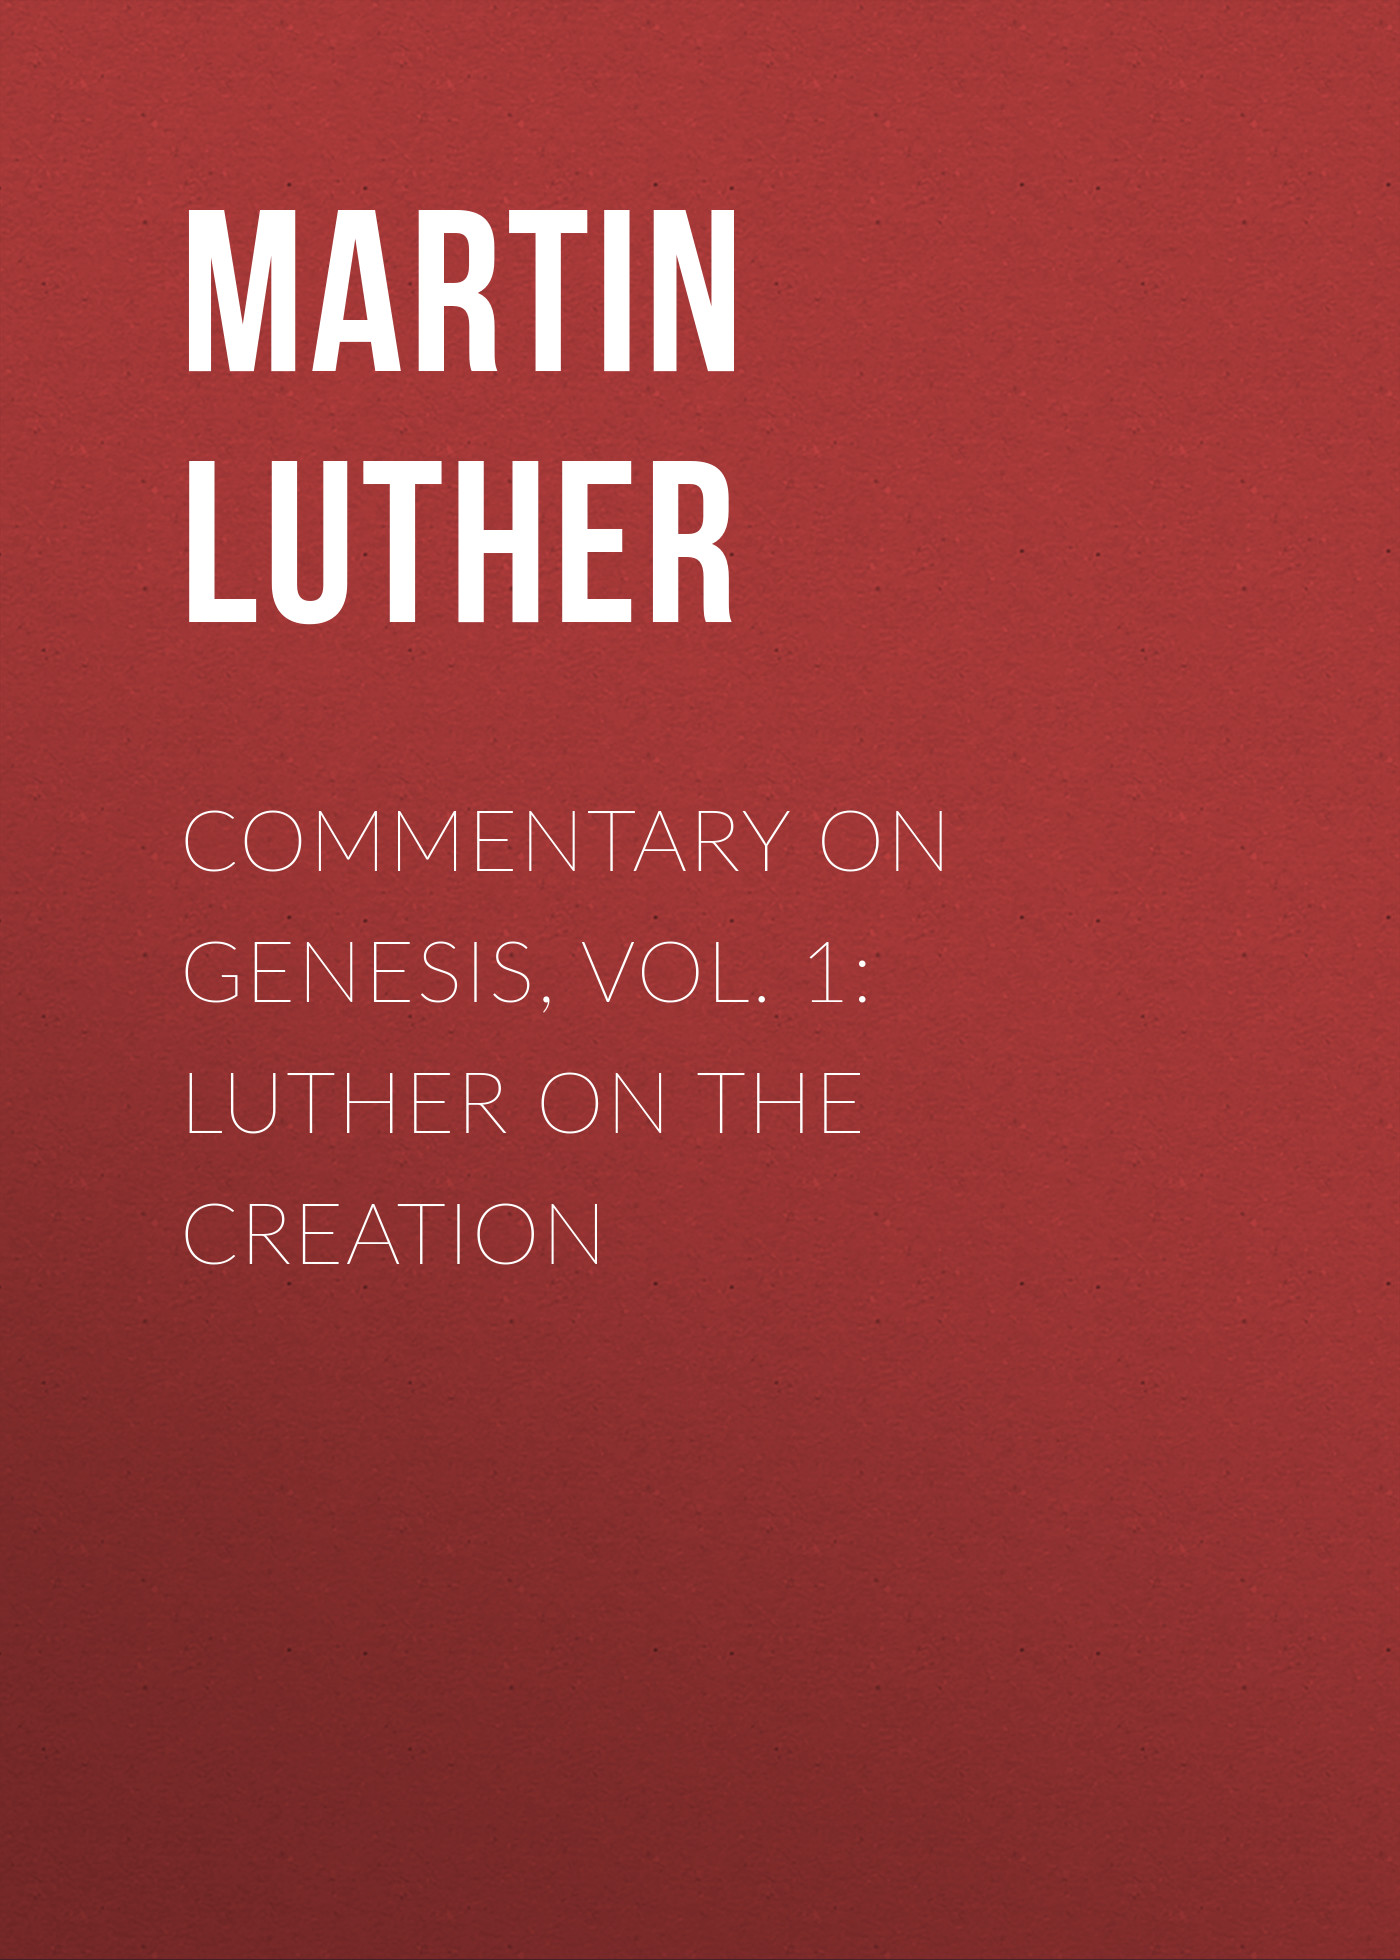 Martin Luther Commentary on Genesis, Vol. 1: Luther on the Creation m luther luther s letters to women